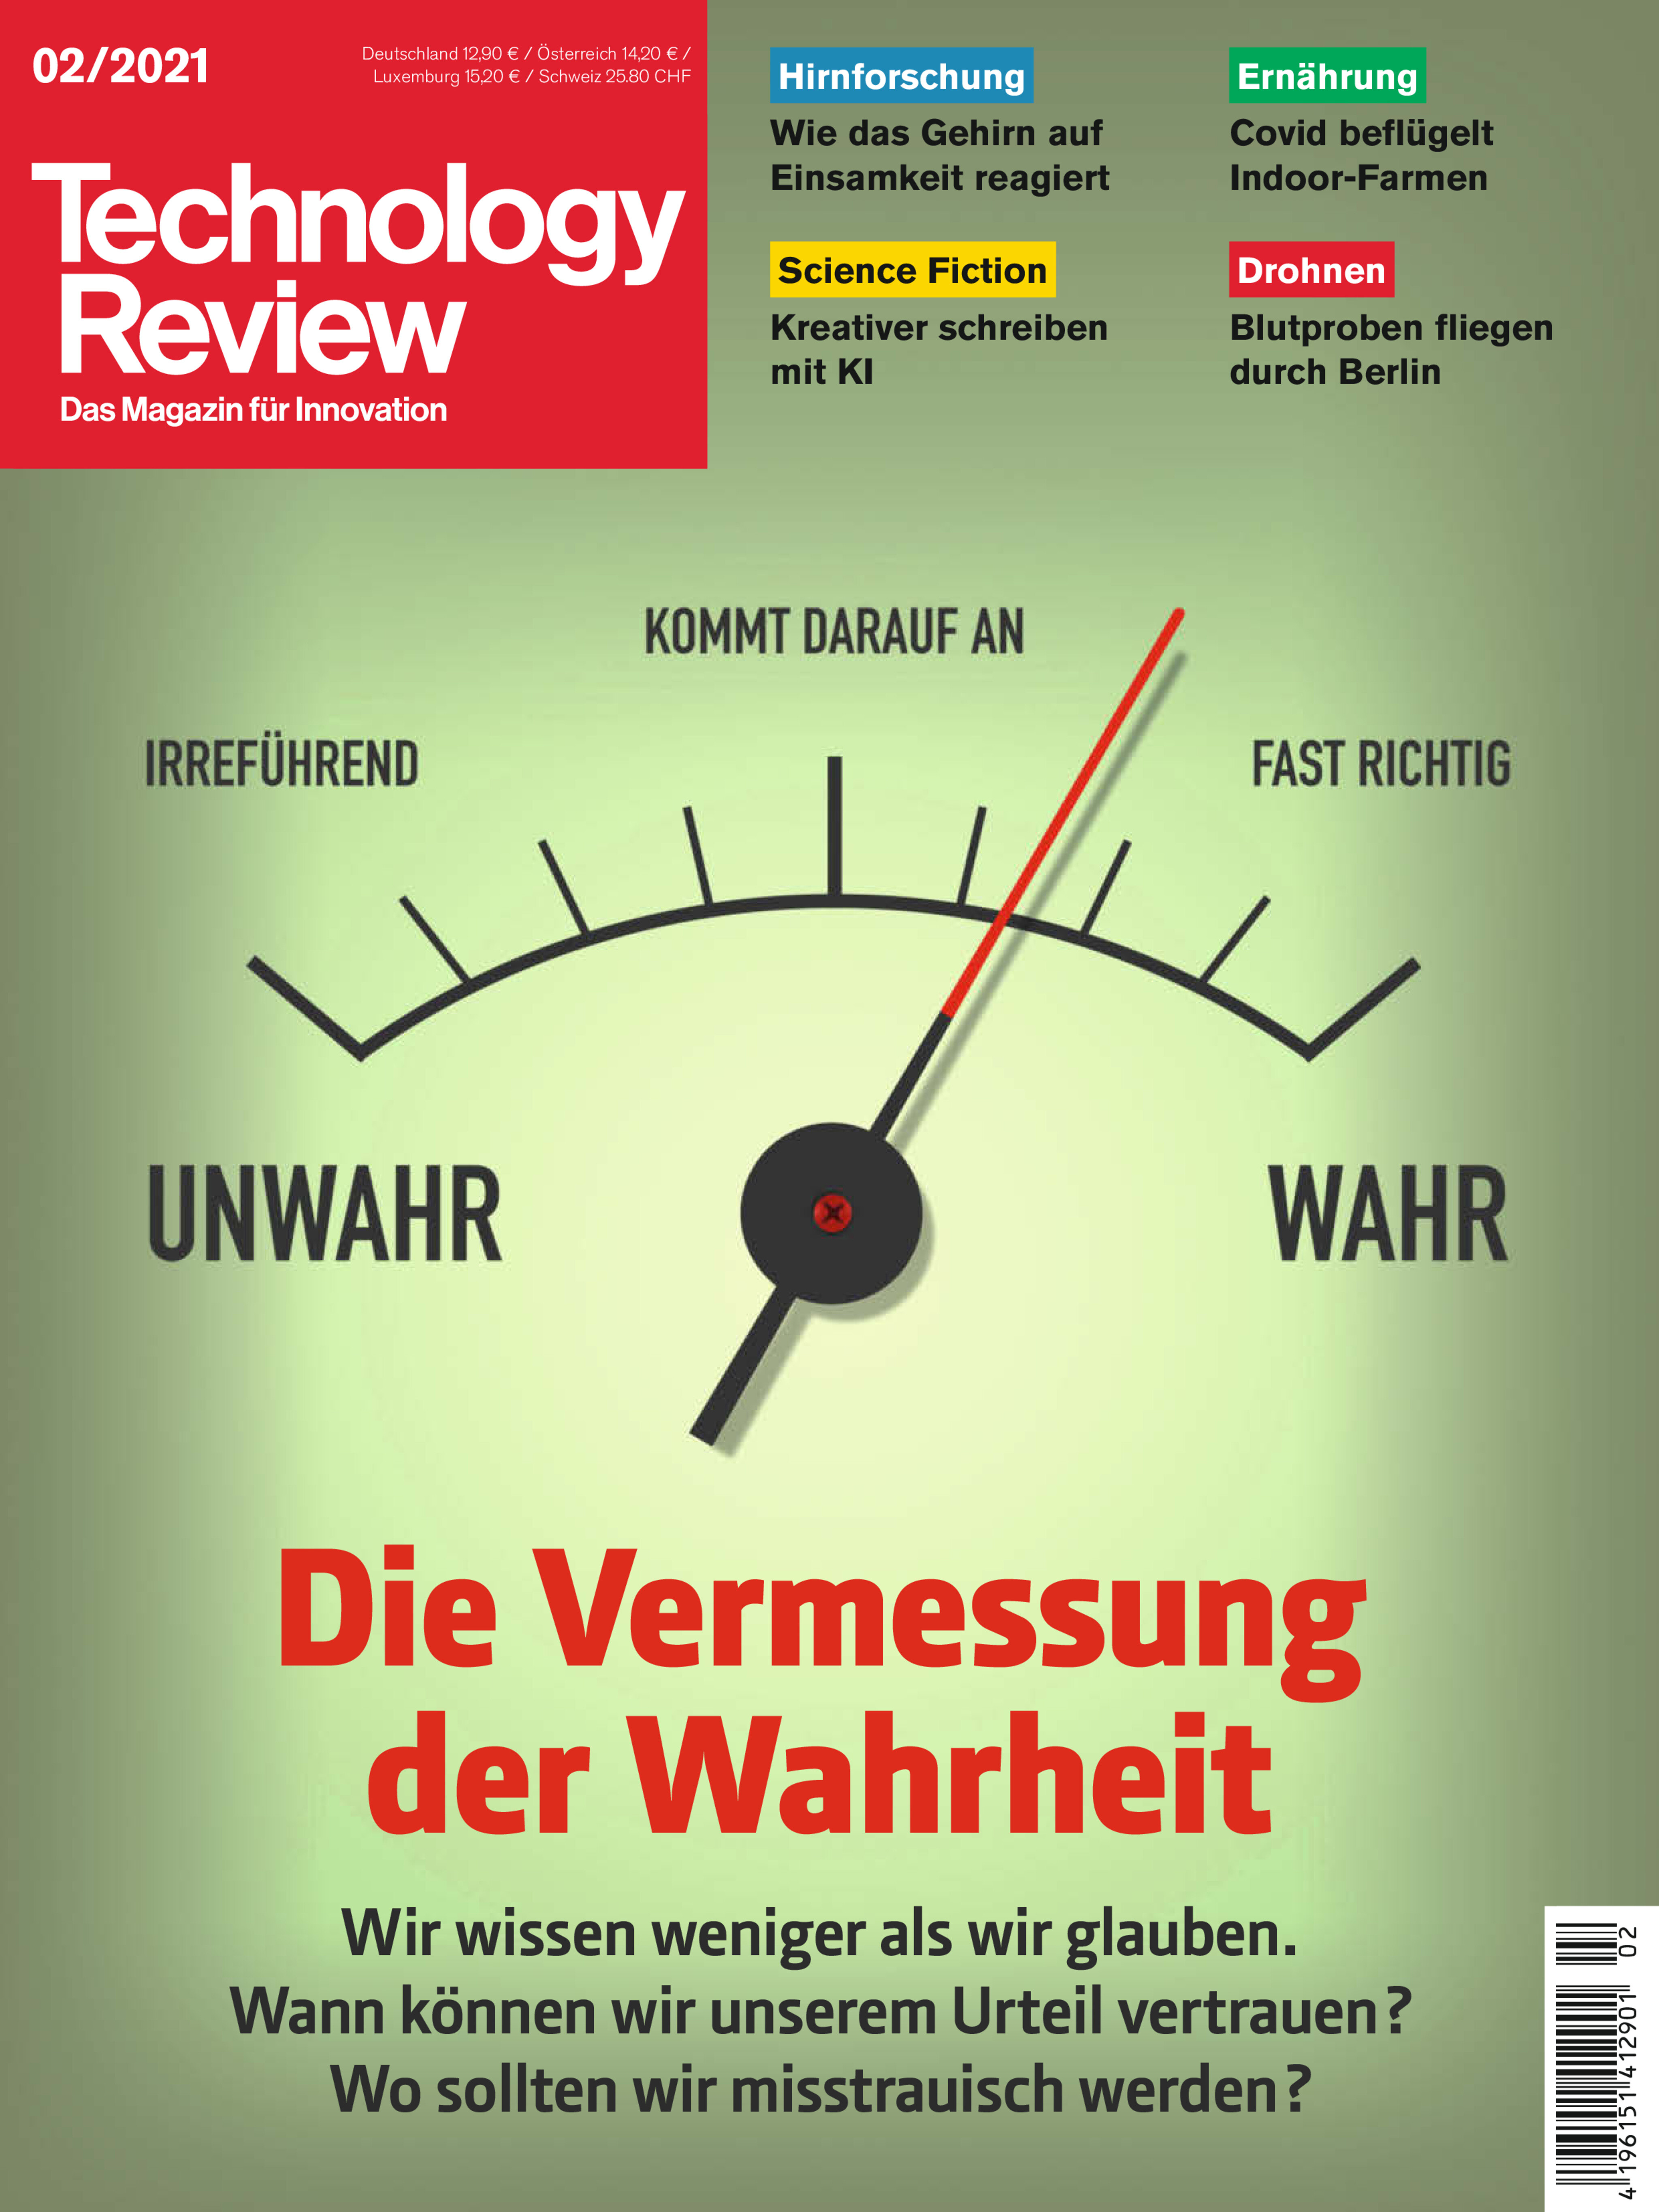 Technology Review 02/2021